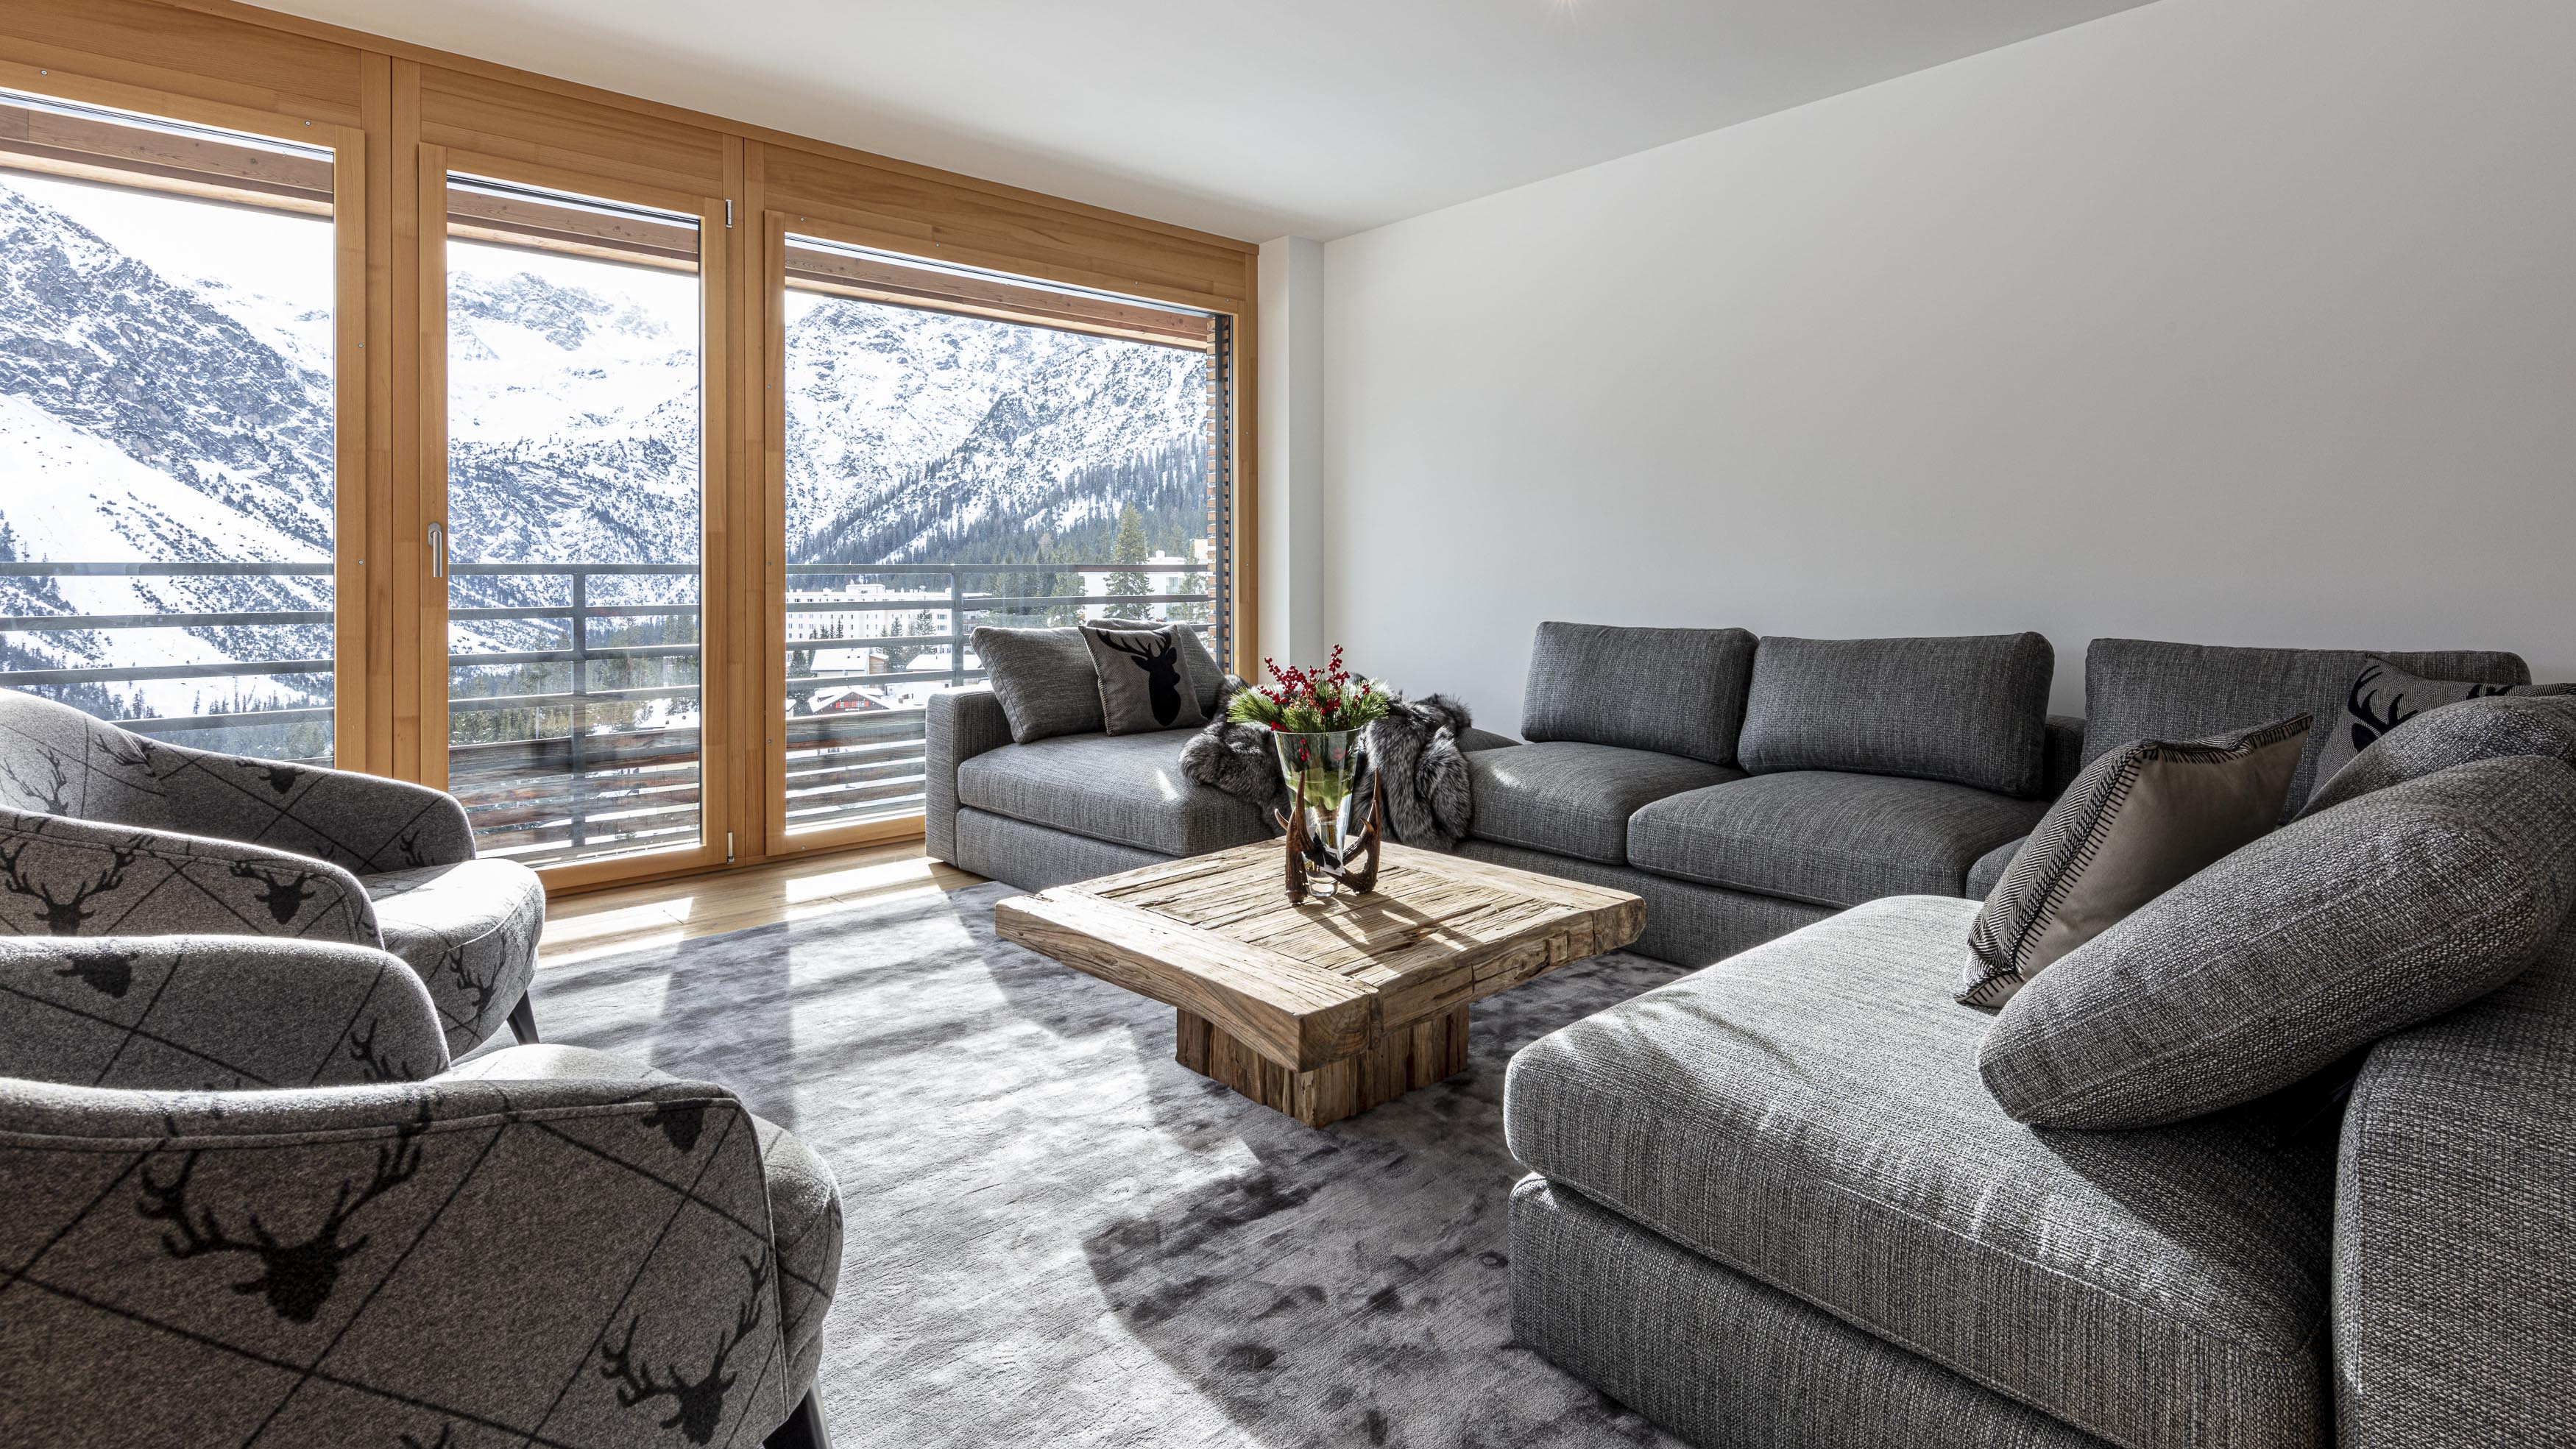 Haus Ratia Apartments, Switzerland